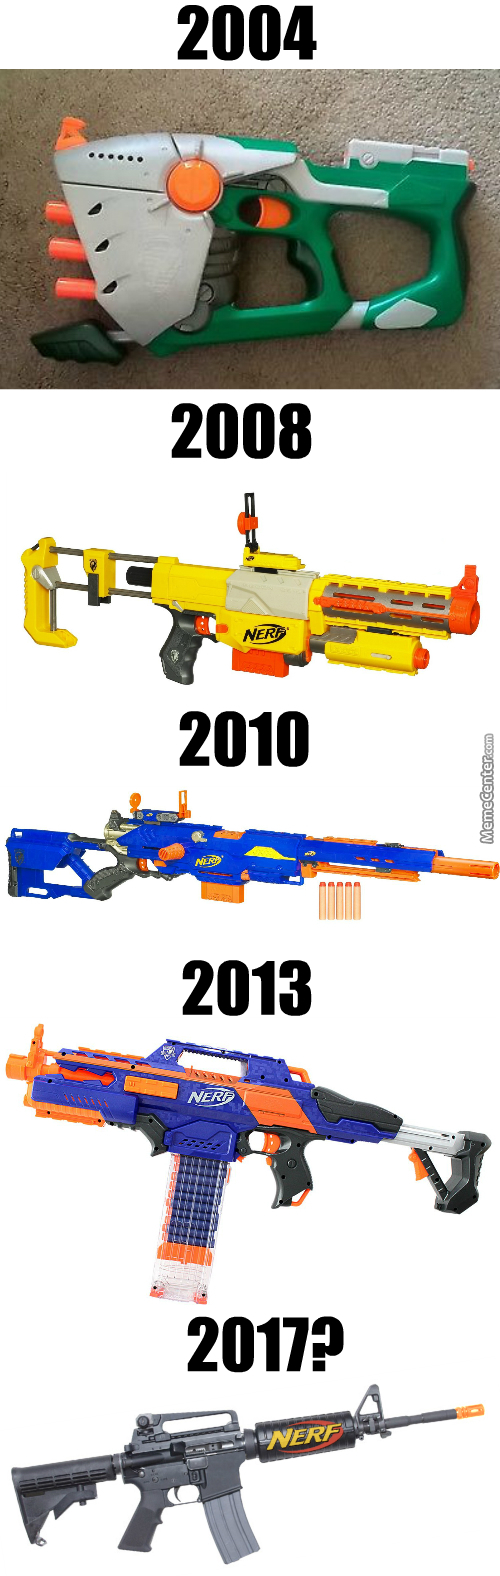 Nerf Guns Keep Getting More Realistic